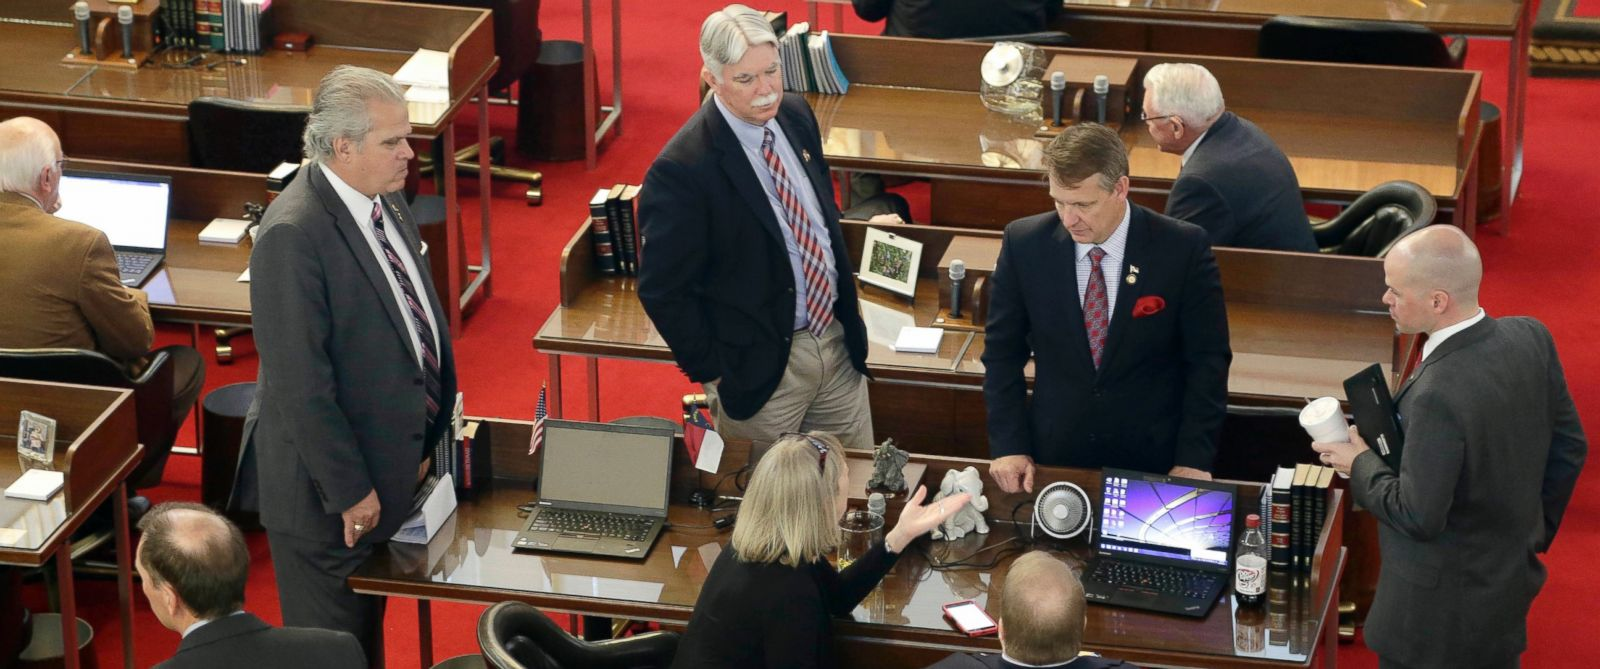 PHOTO: North Carolina lawmakers gather on the House floor for a special session, March 23, 2016, in Raleigh, N.C.